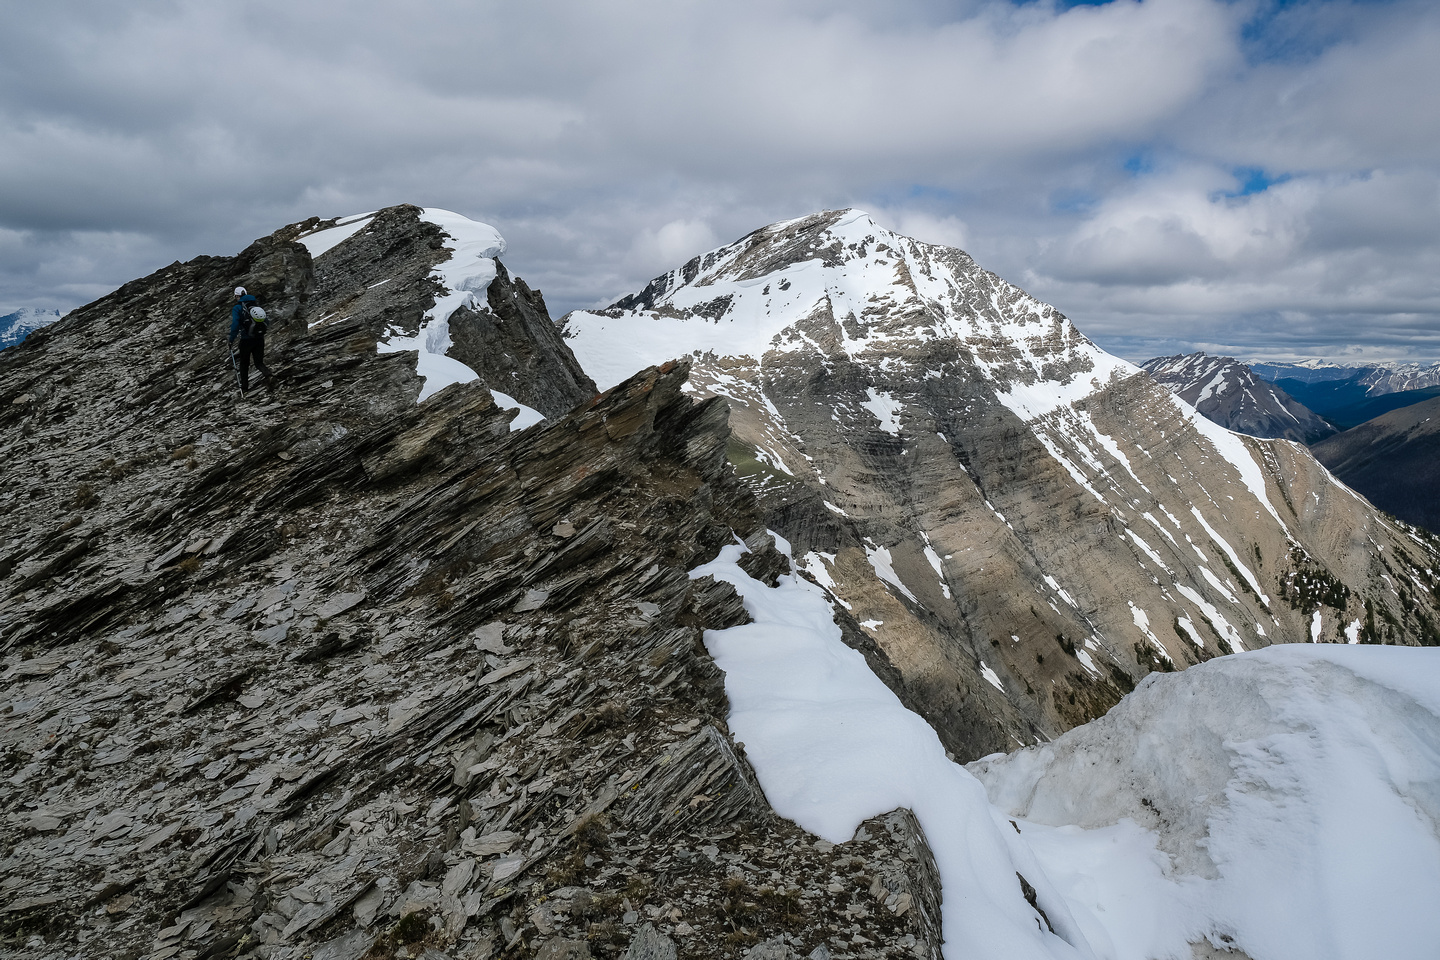 Traversing the south ridge of Mount Shanks.